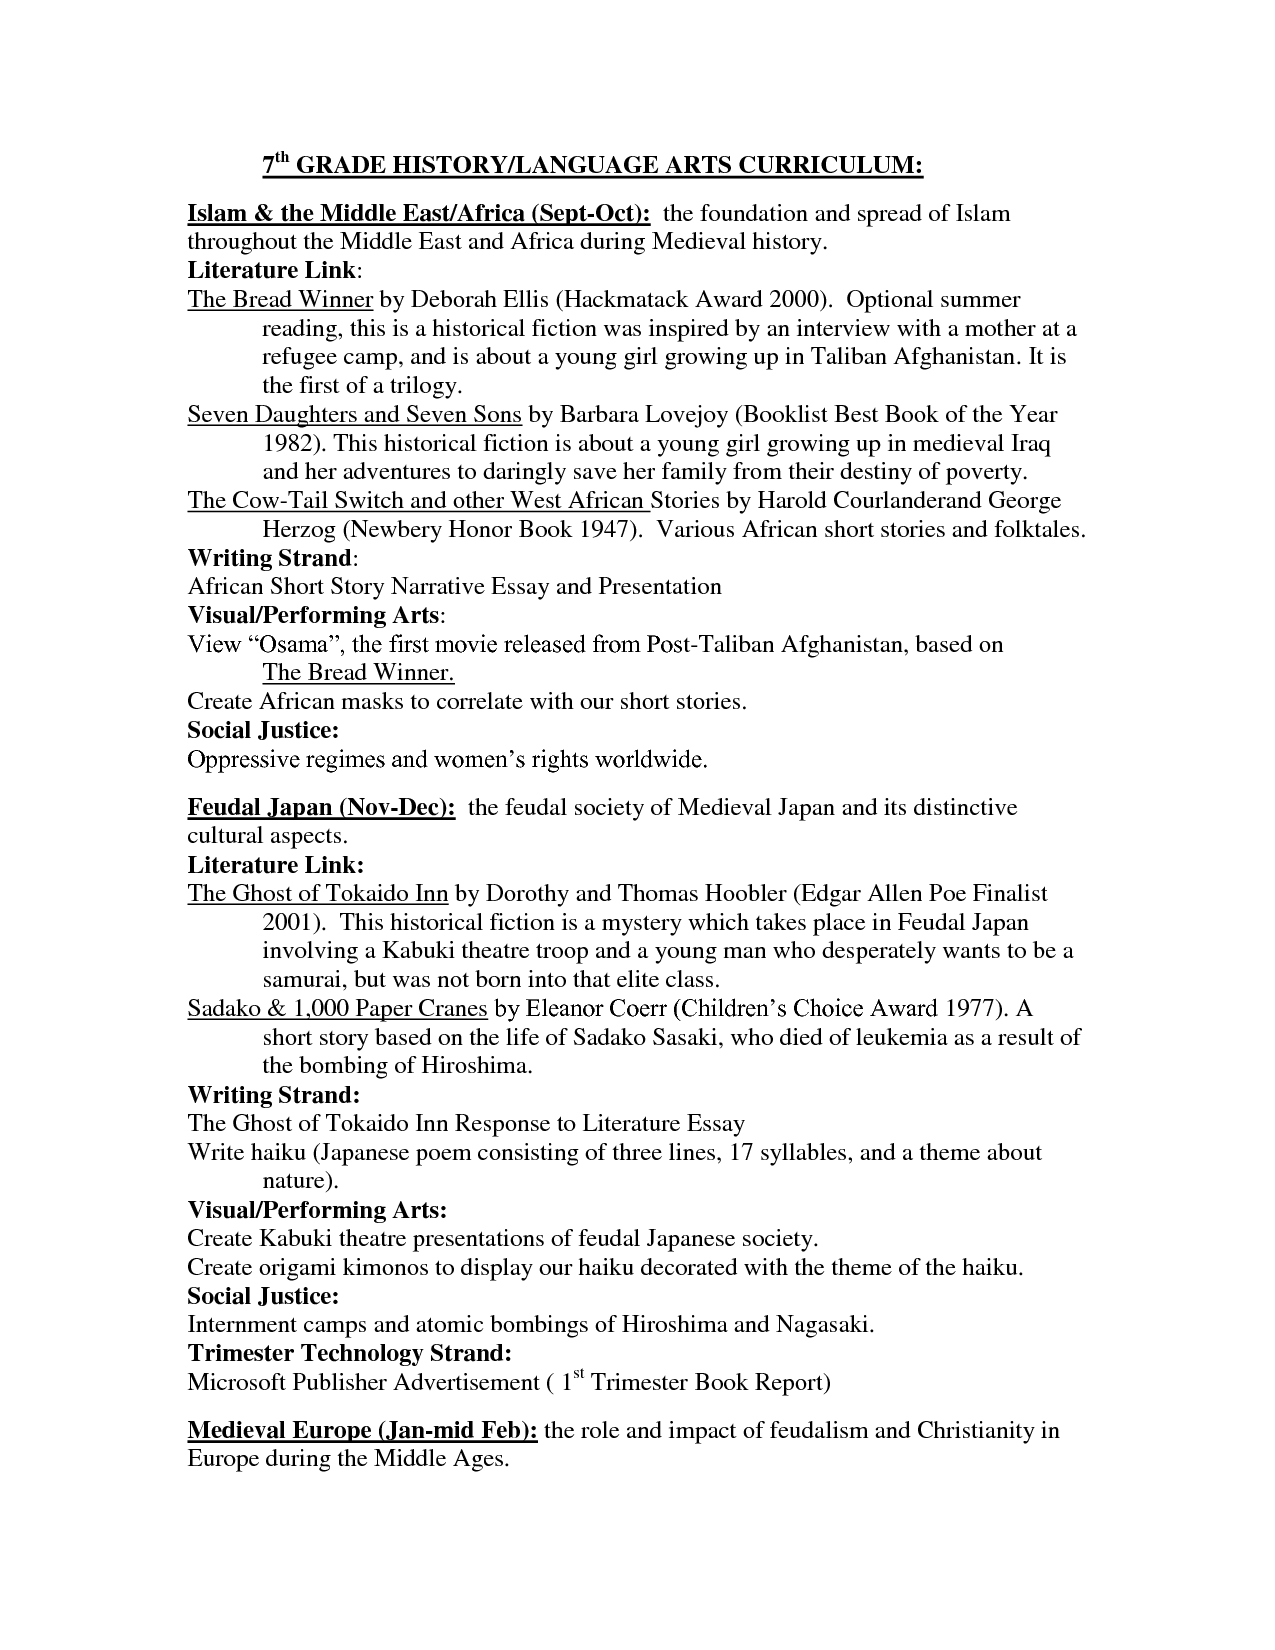 17 Best Images Of Inkheart The Book Worksheets For 7th